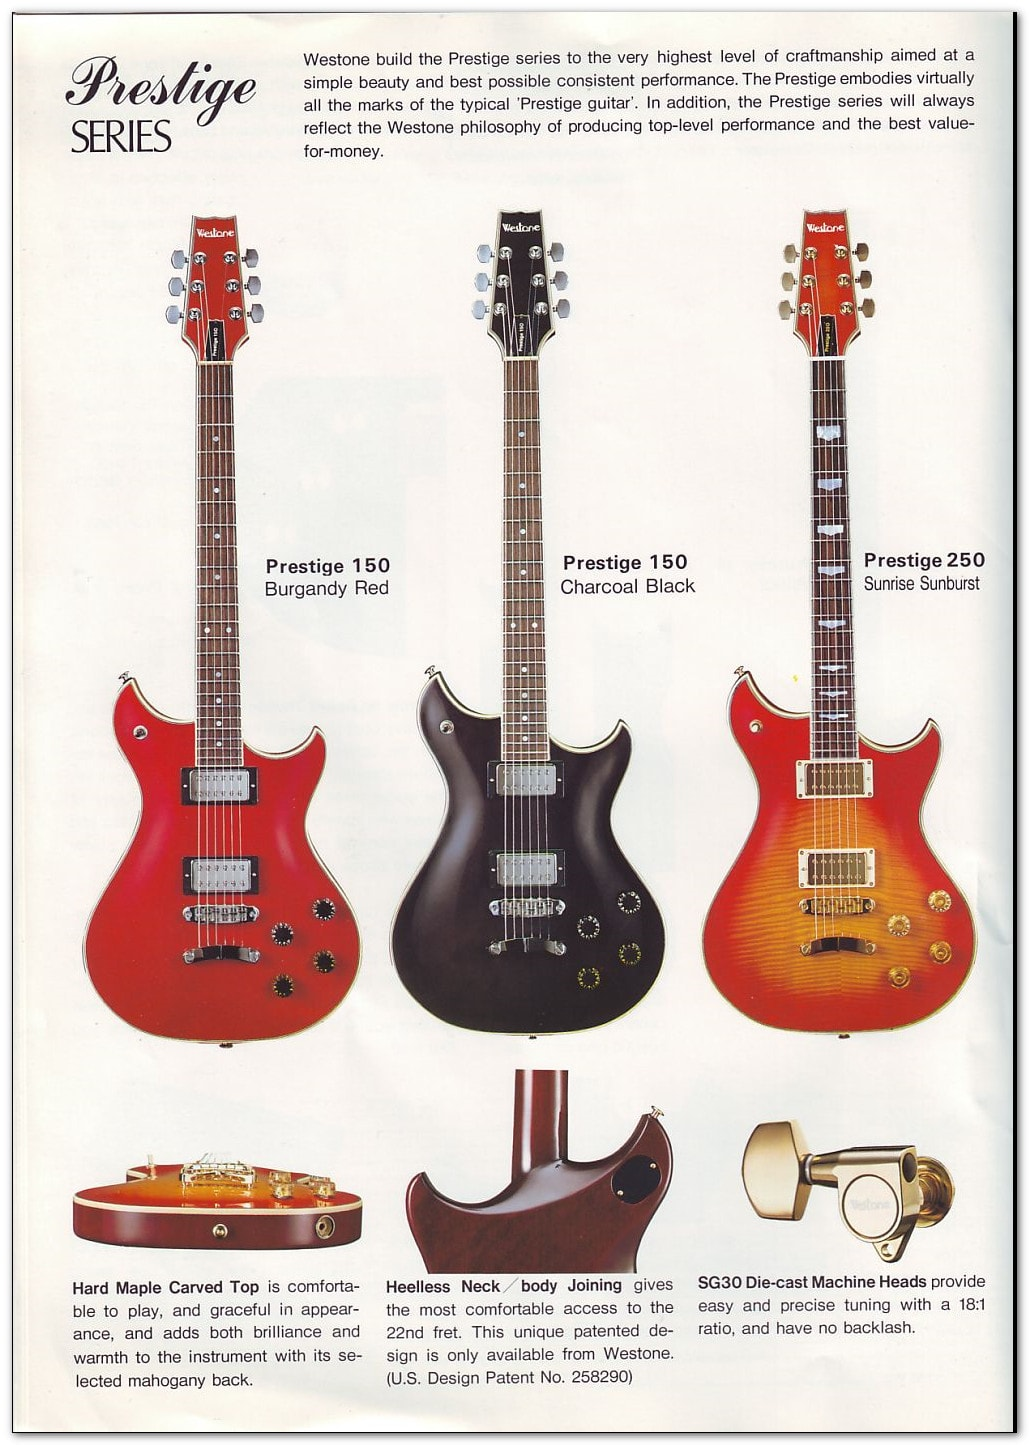 19823 Catalogue  1983 US Price List  Westone Guitars  the Home of Westone